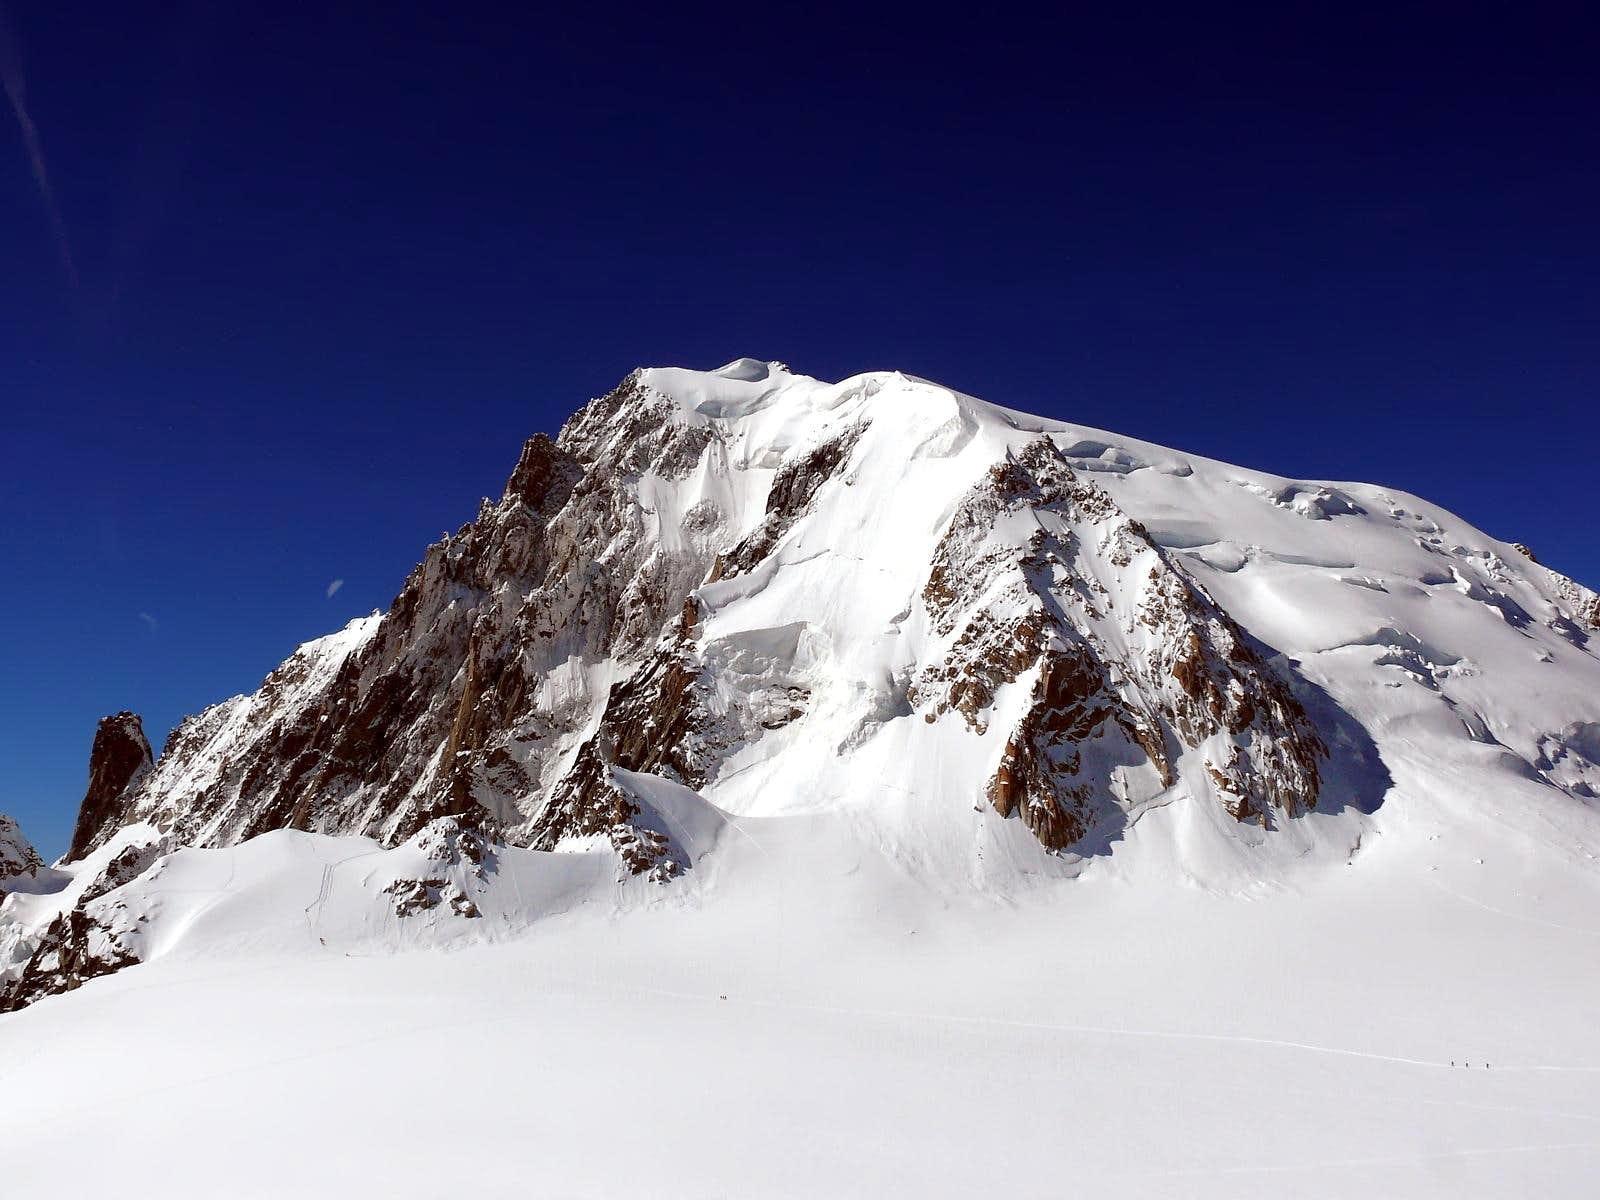 <font color=blue>▲</font>Views of Mont Blanc du Tacul